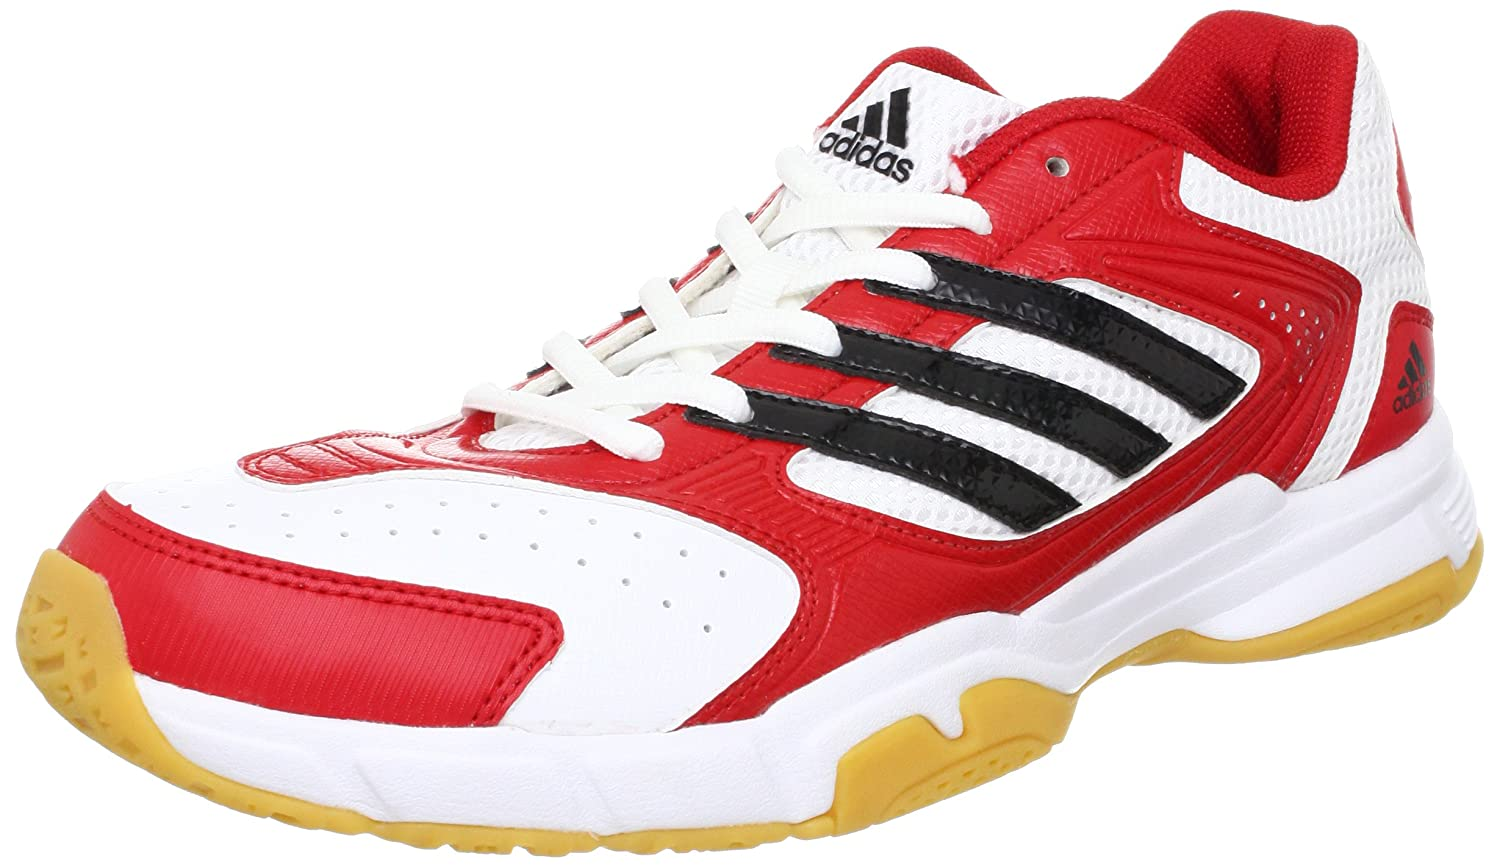 ADIDAS Feather Replique Indoor Court Shoe [red] adidas Performance